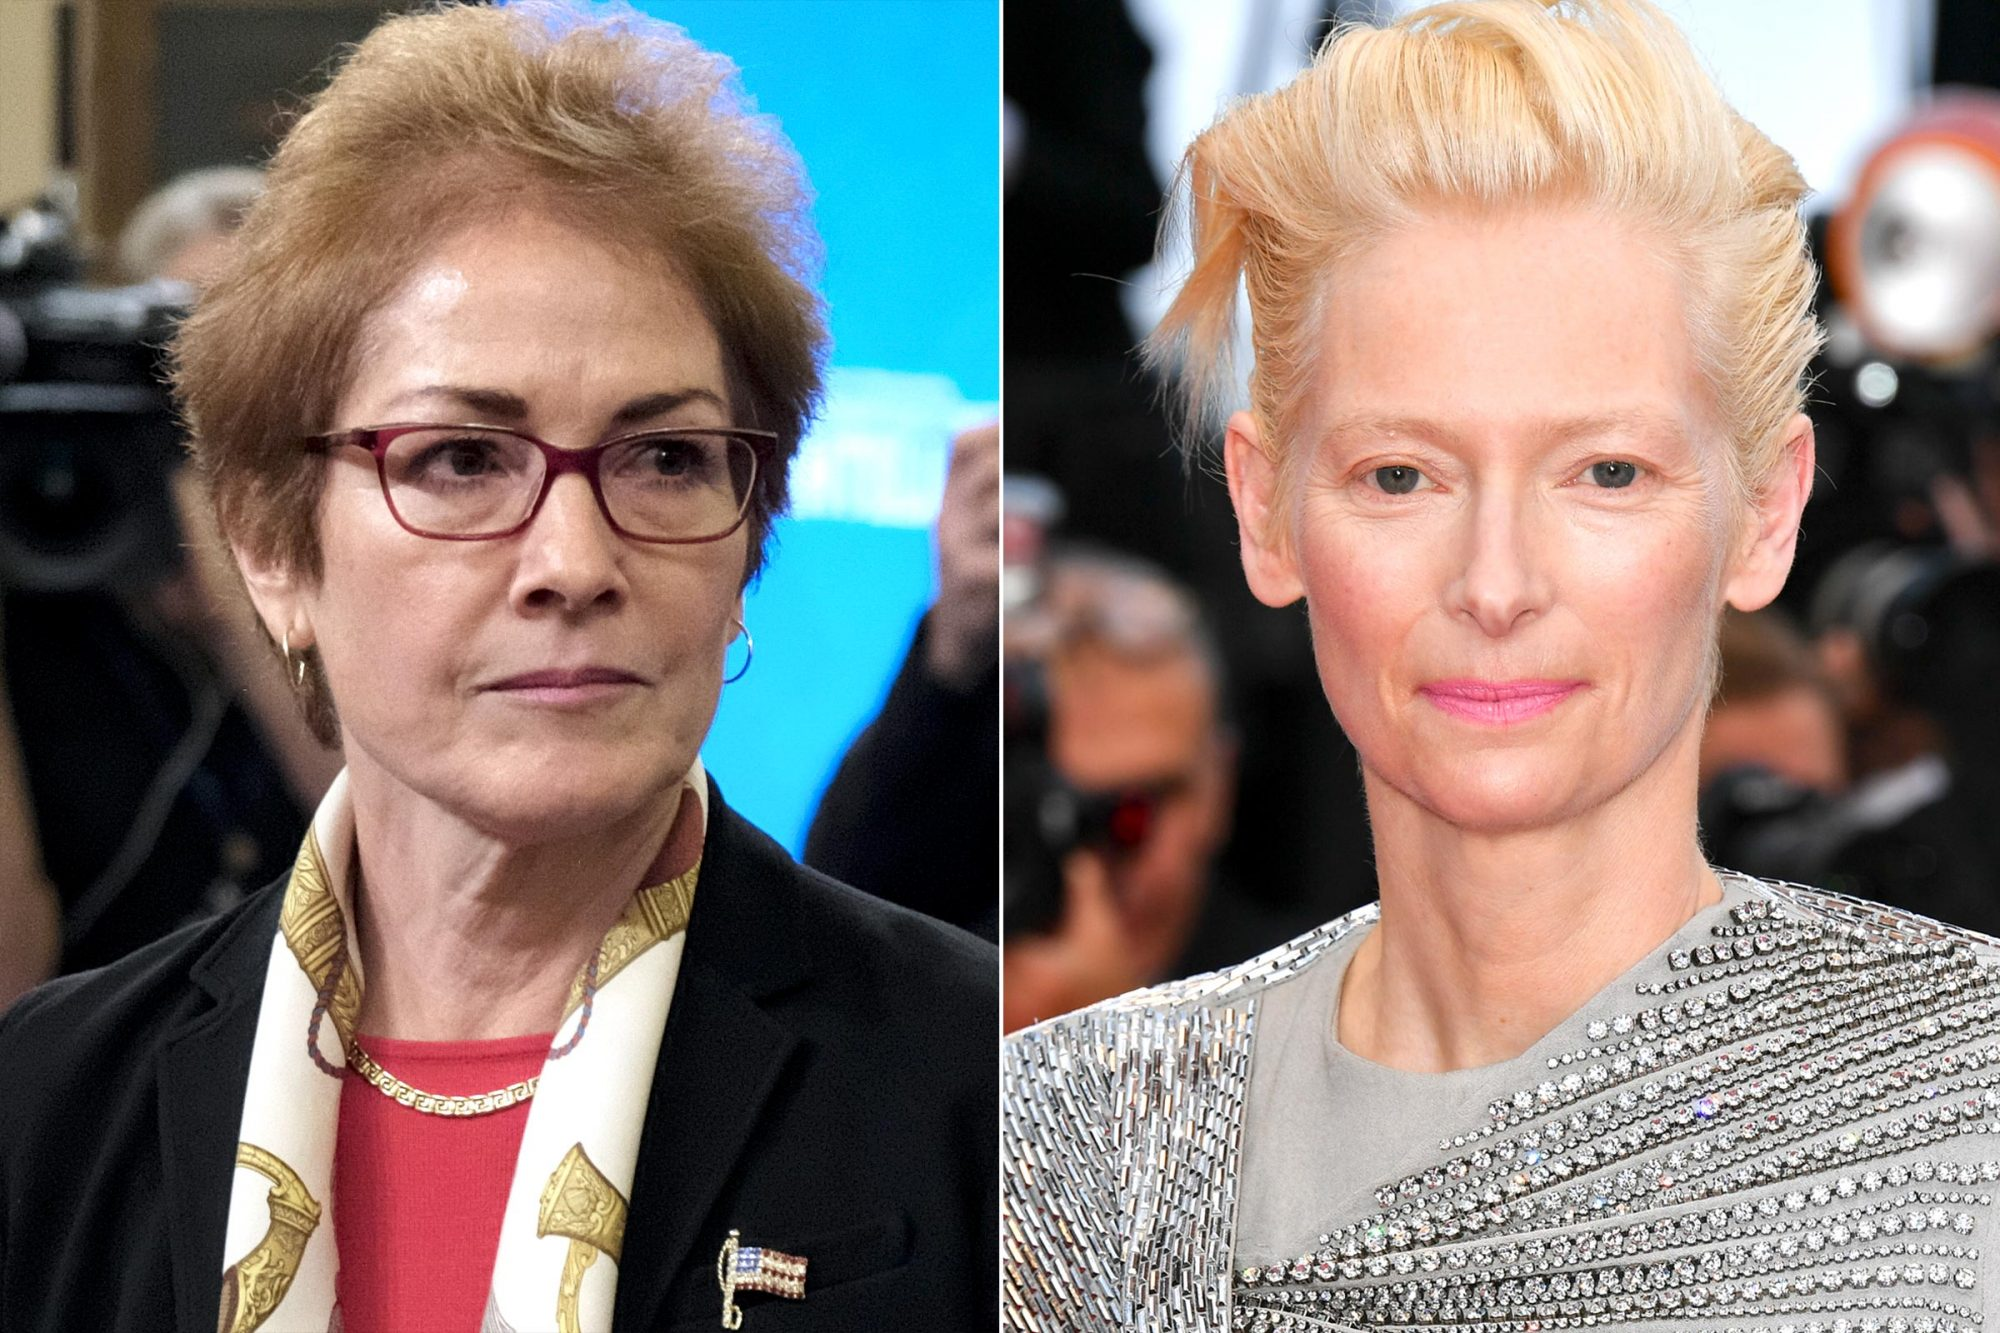 Former U.S. Ambassador to Ukraine Marie Yovanovitch, played by Tilda Swinton